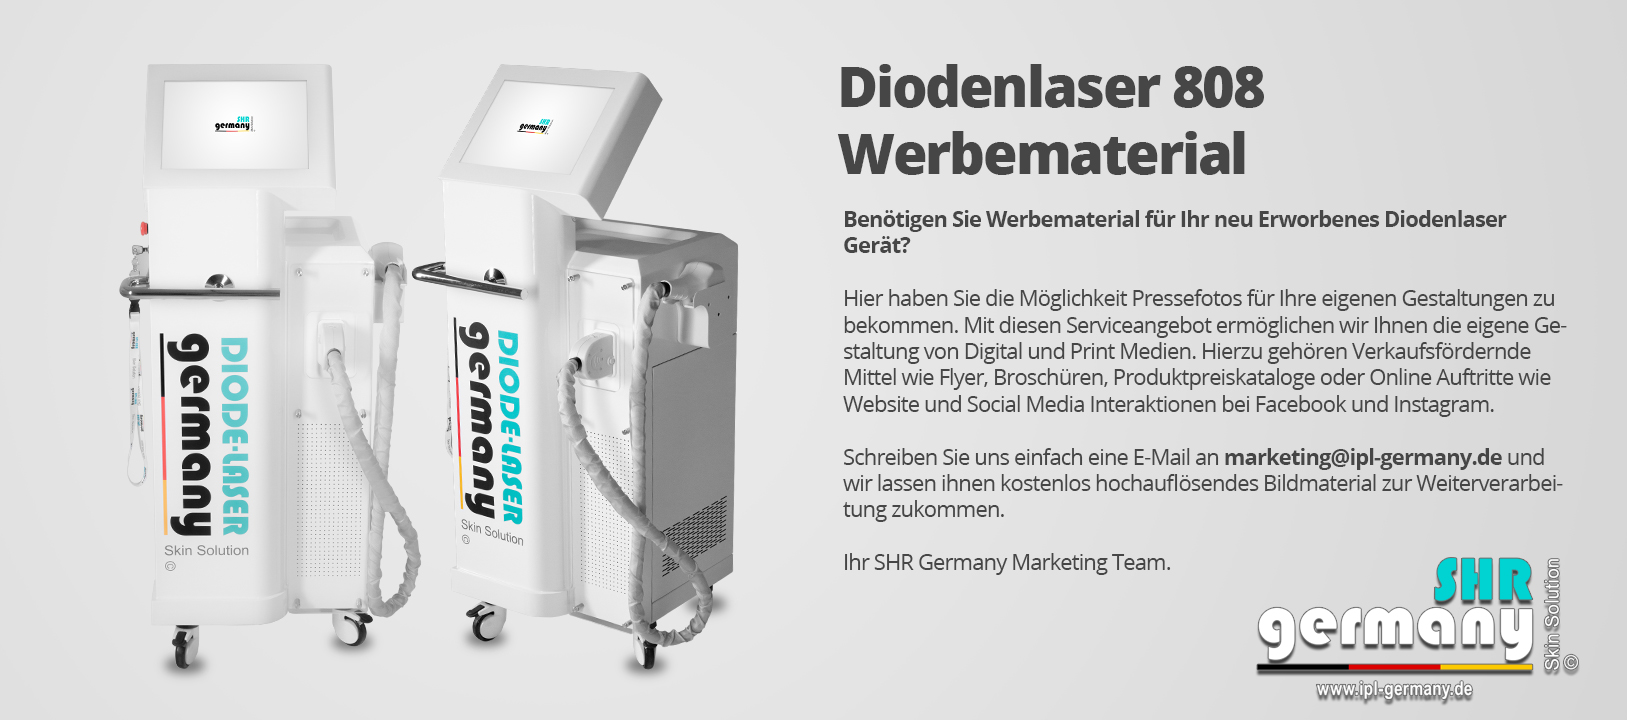 SHR_Germany_Diodenlaser_808_Werbematerial